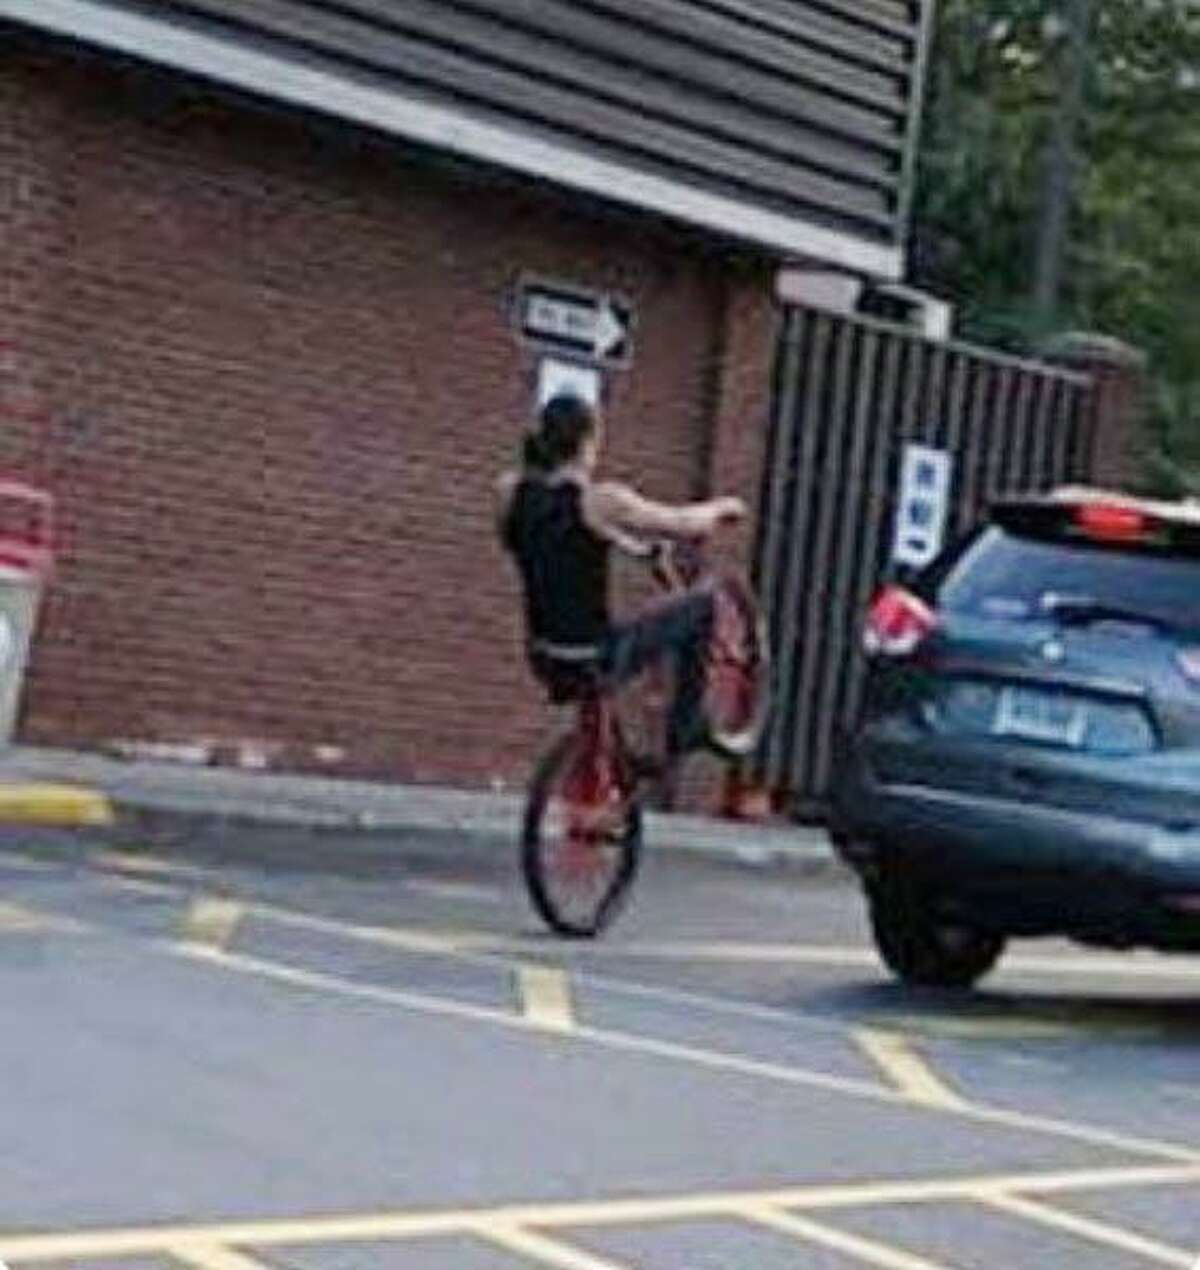 Milford police are trying to identify this bike rider, who allegedly was riding recklessly on Bridgeport Avenue last week and nearly caused car accidents.